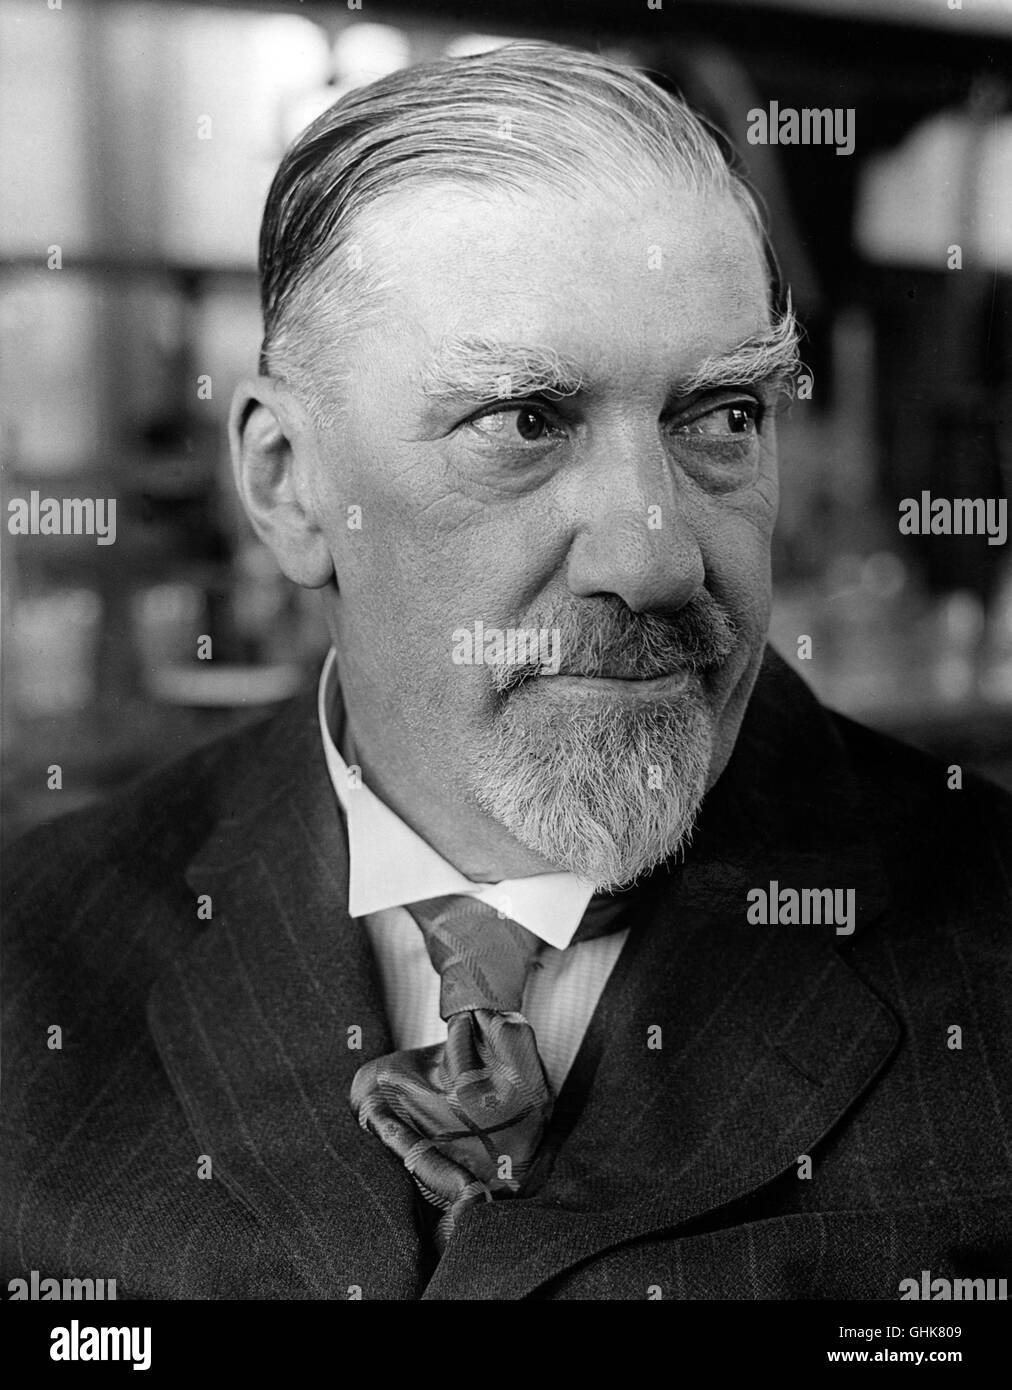 Charles Norris, American Forensic Toxicologist - Stock Image